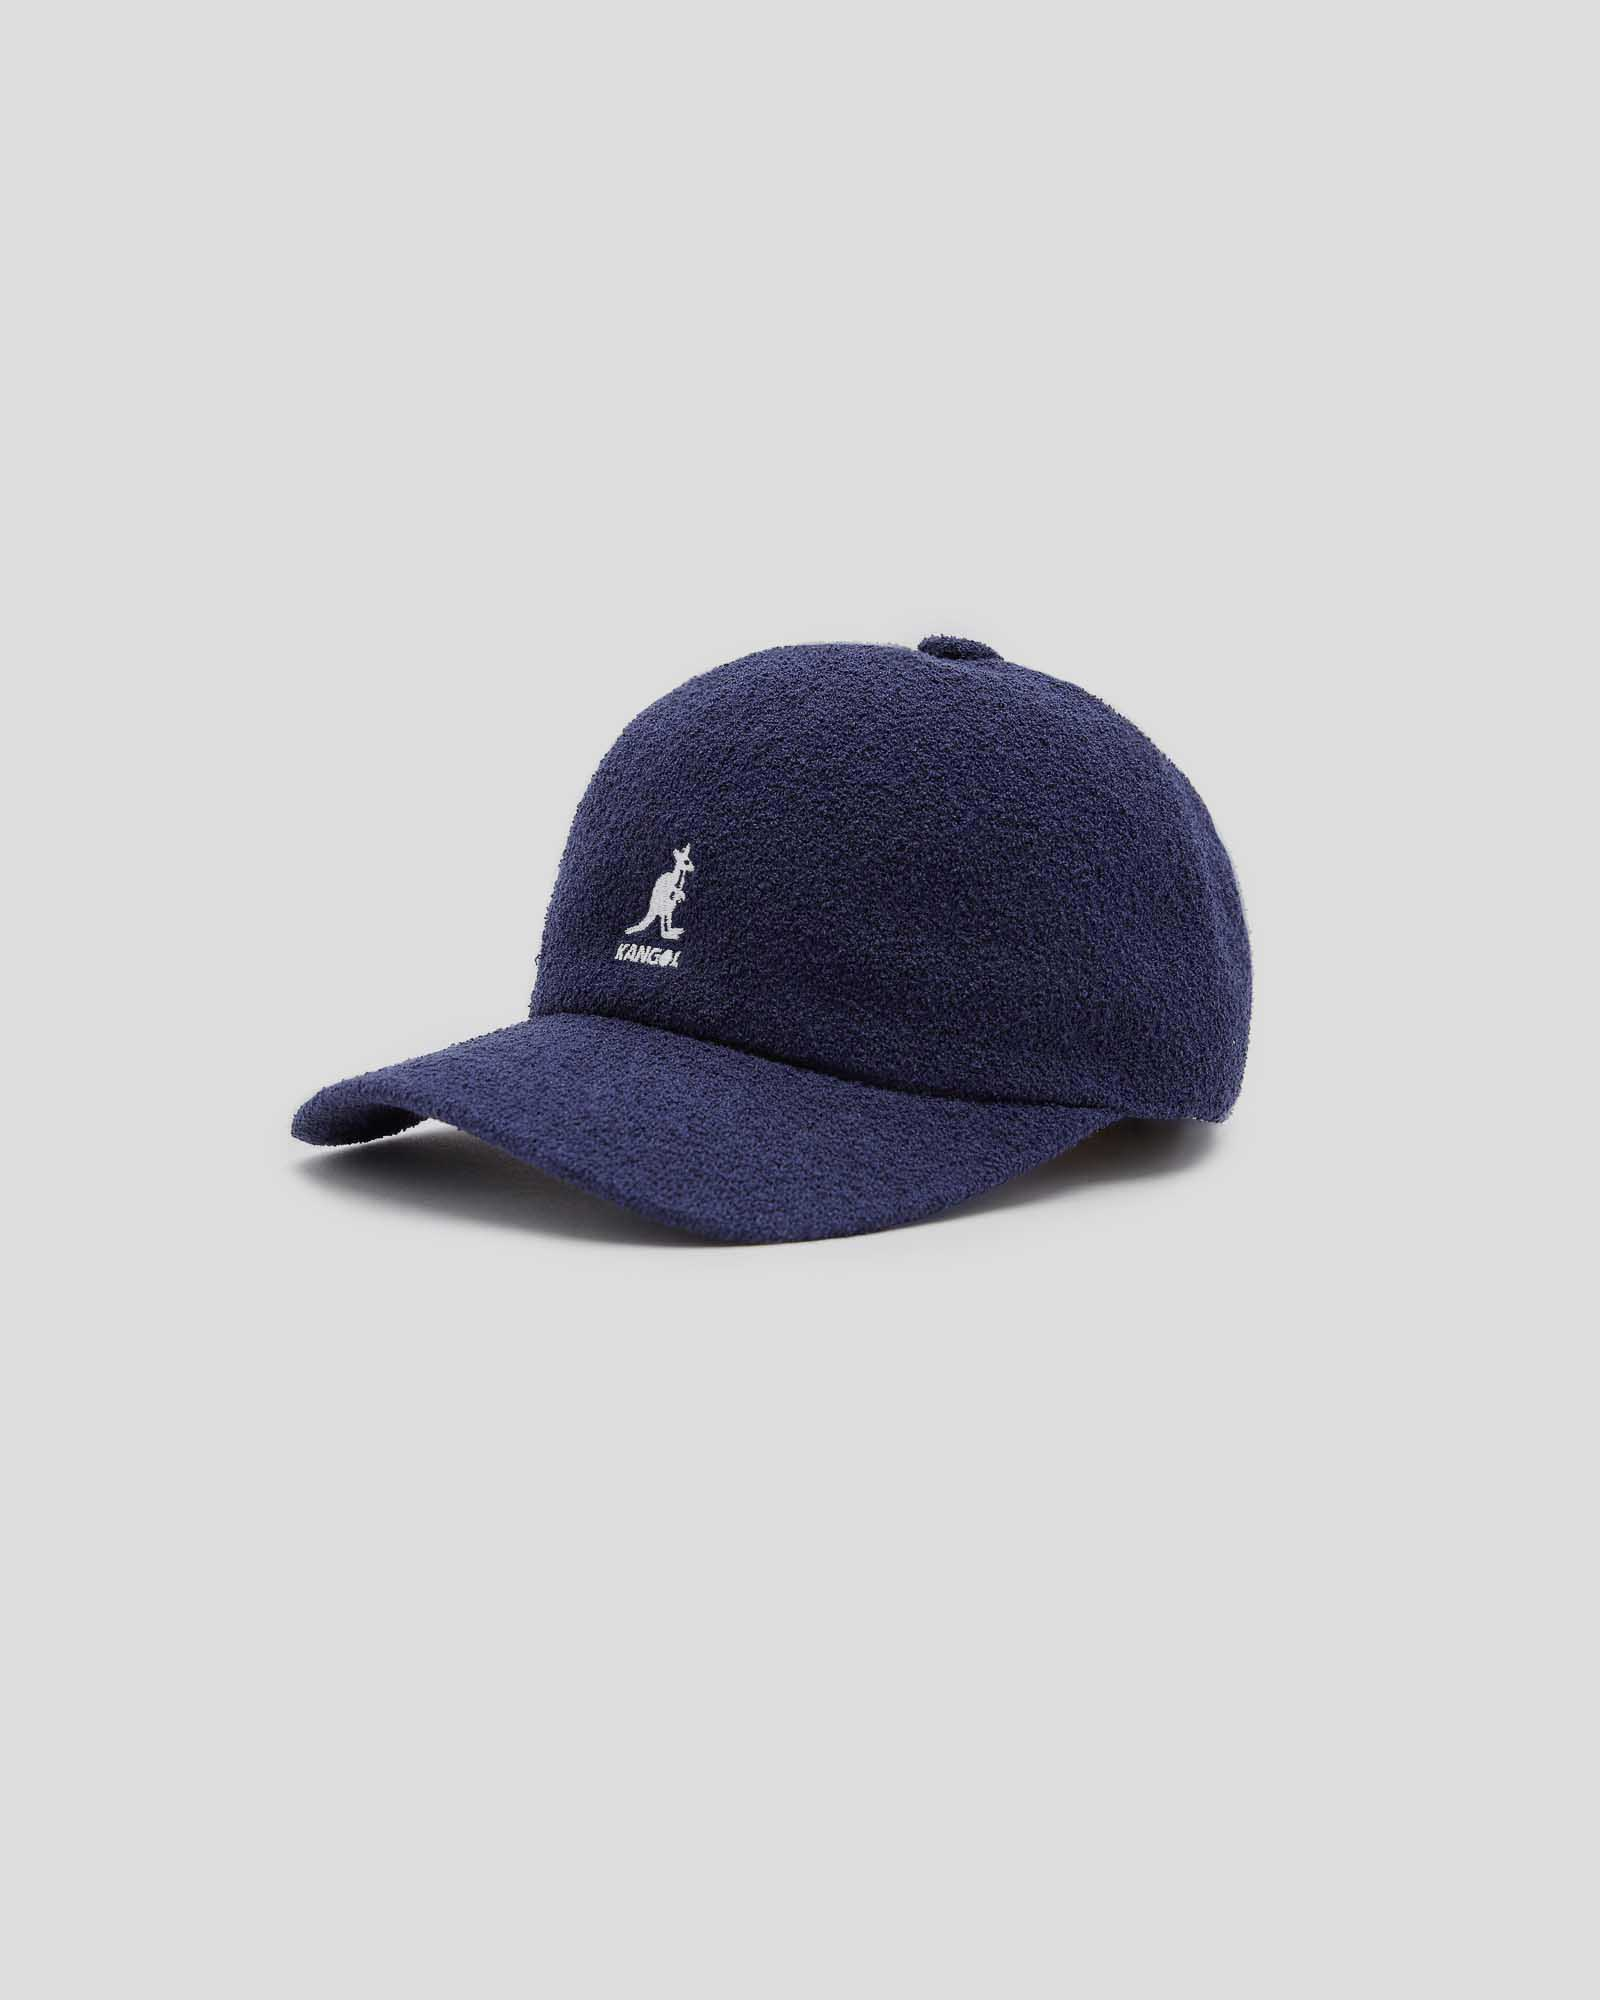 Bermuda Spacecap in Navy